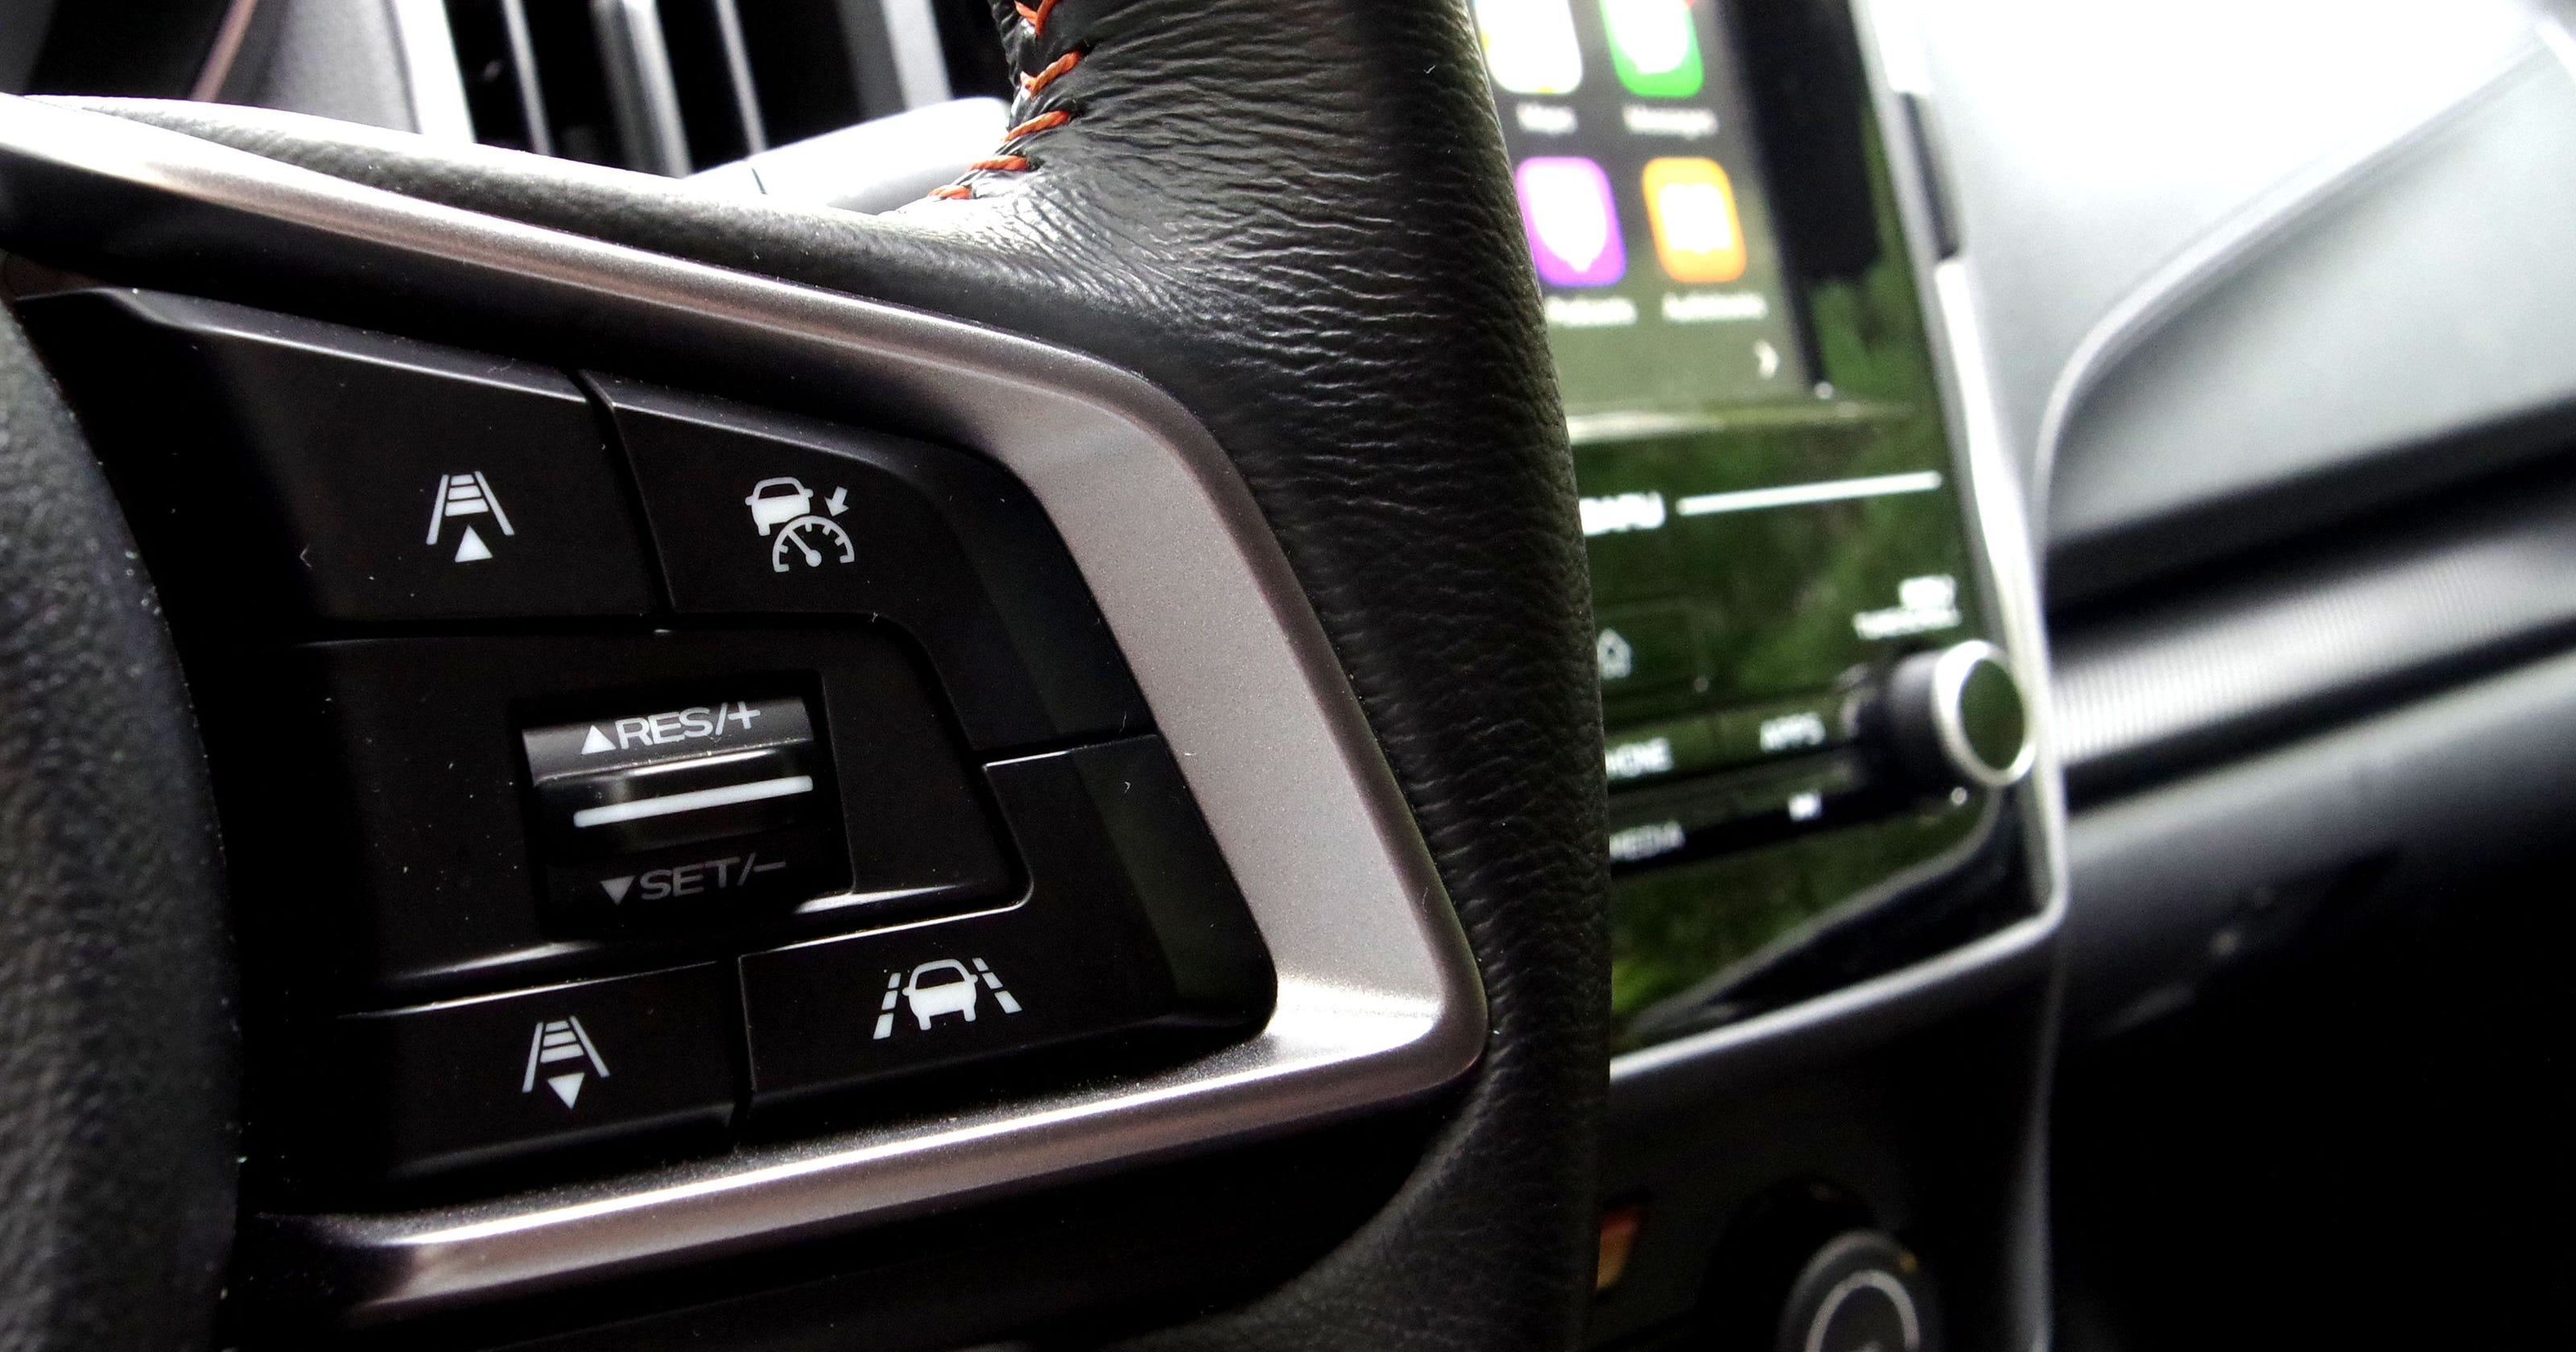 These car safety systems lead to distracted driving, according to AAA study